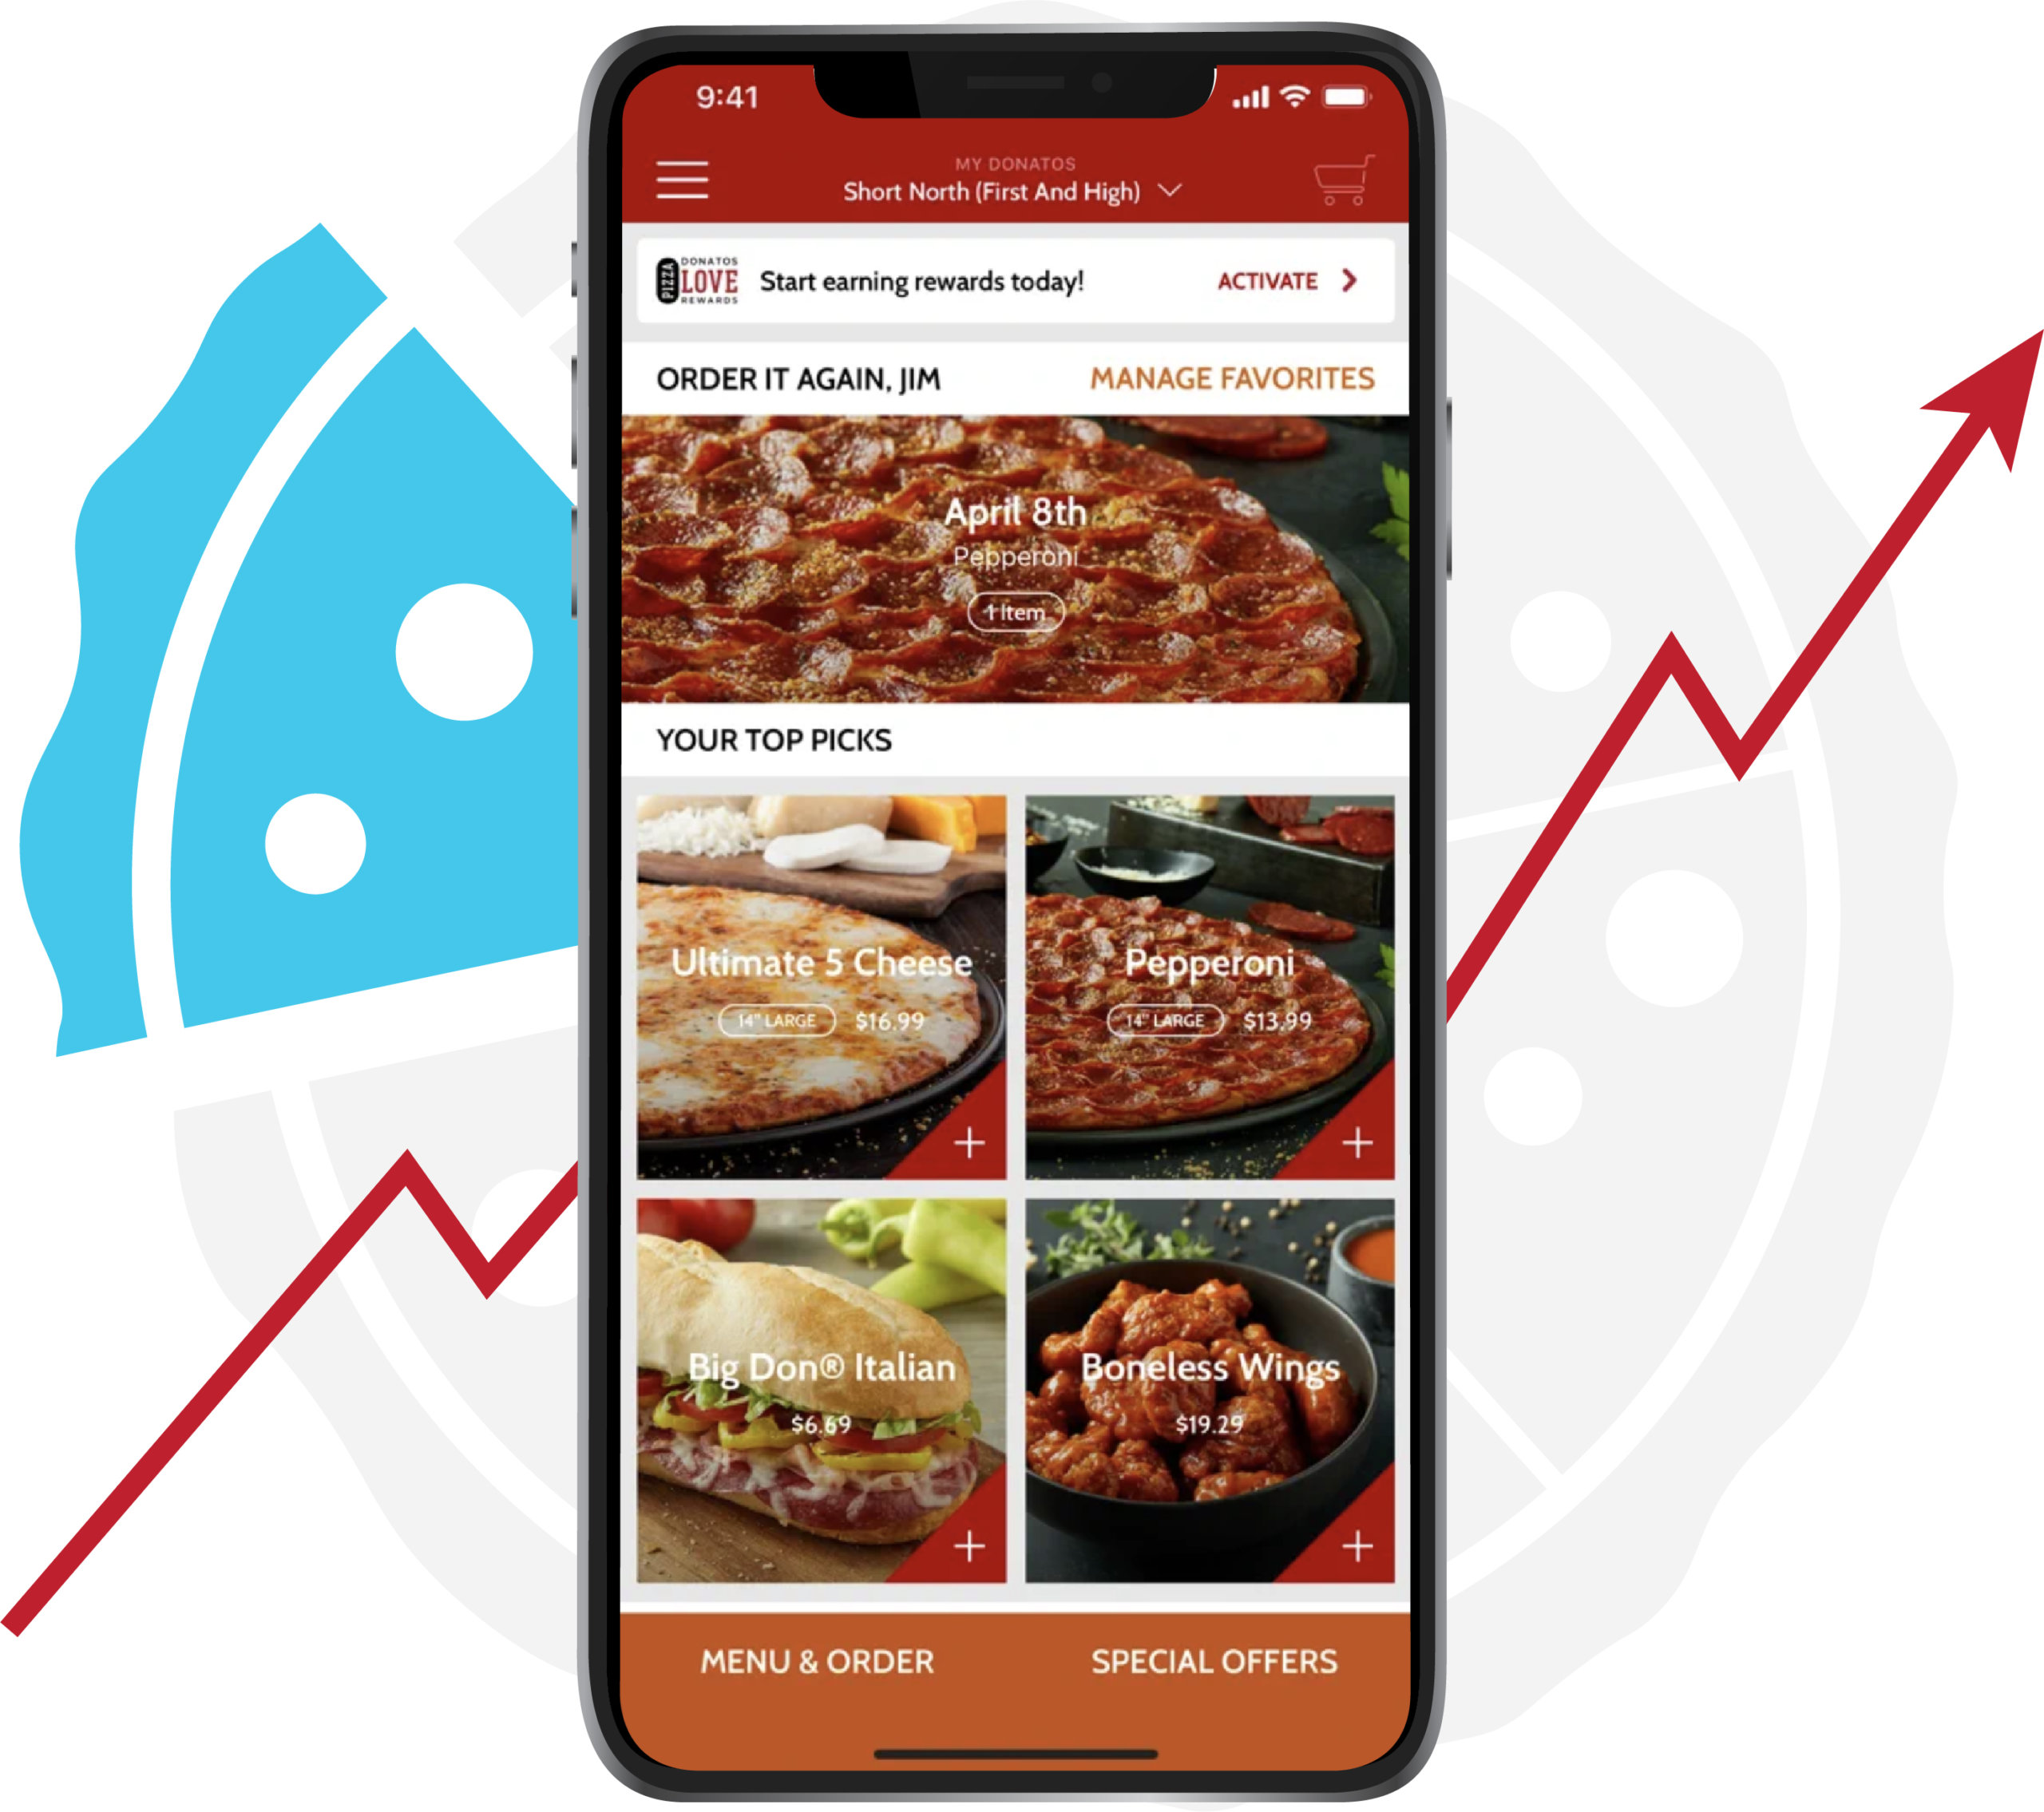 Donatos Pizza app with pizza options to order